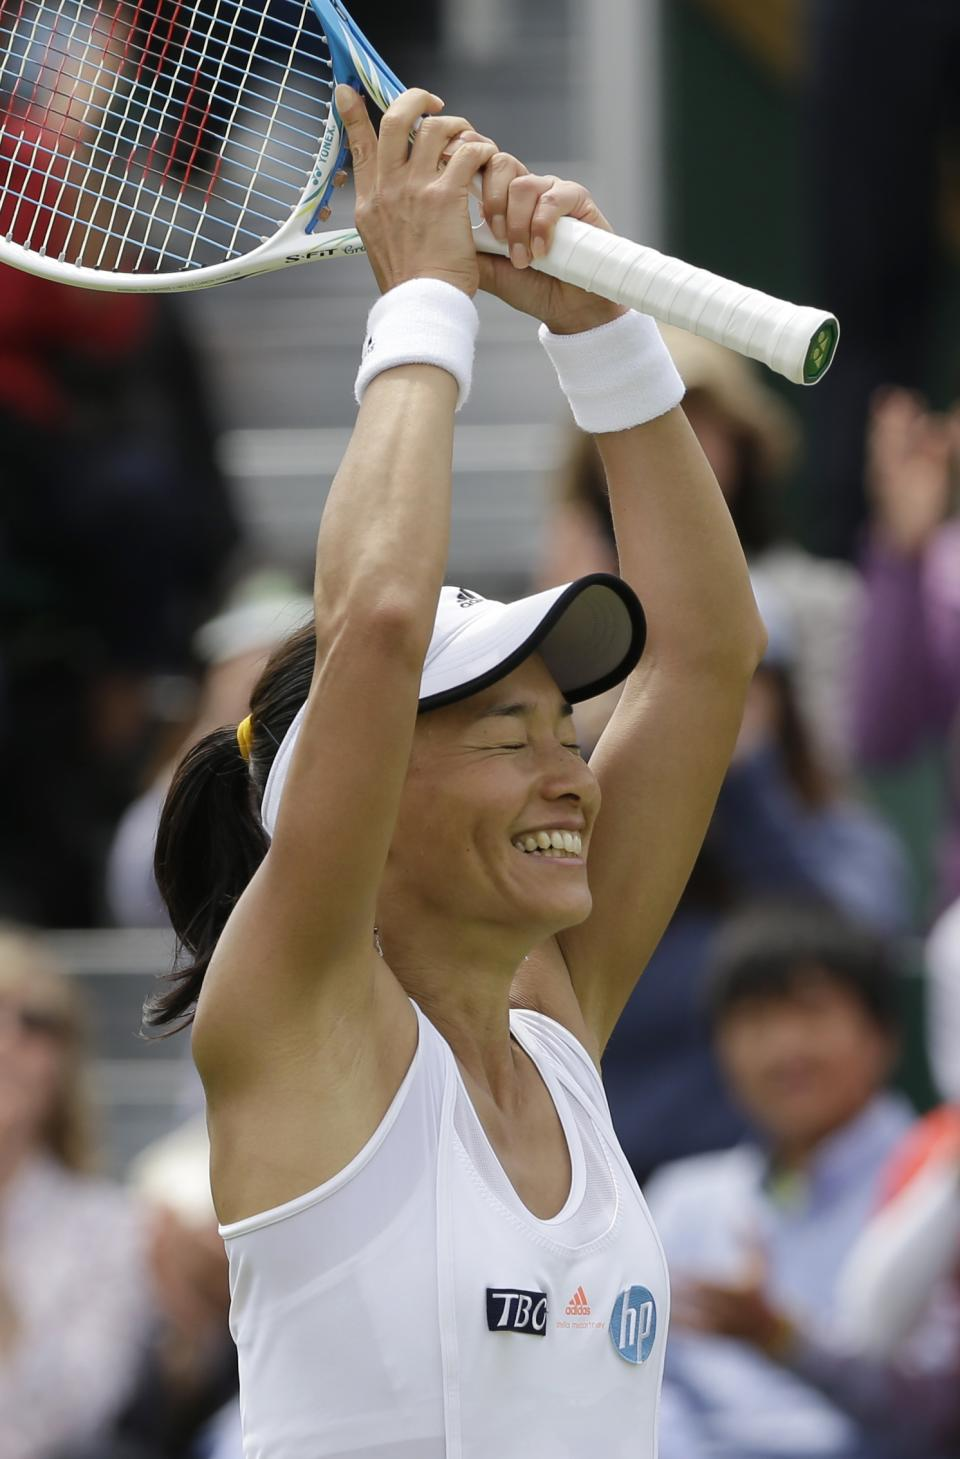 Kimiko Date-Krumm of Japan reacts after defeating Alexandra Cadantu of Romania during their Women's second round singles match at the All England Lawn Tennis Championships in Wimbledon, London, Thursday, June 27, 2013. (AP Photo/Anja Niedringhaus)